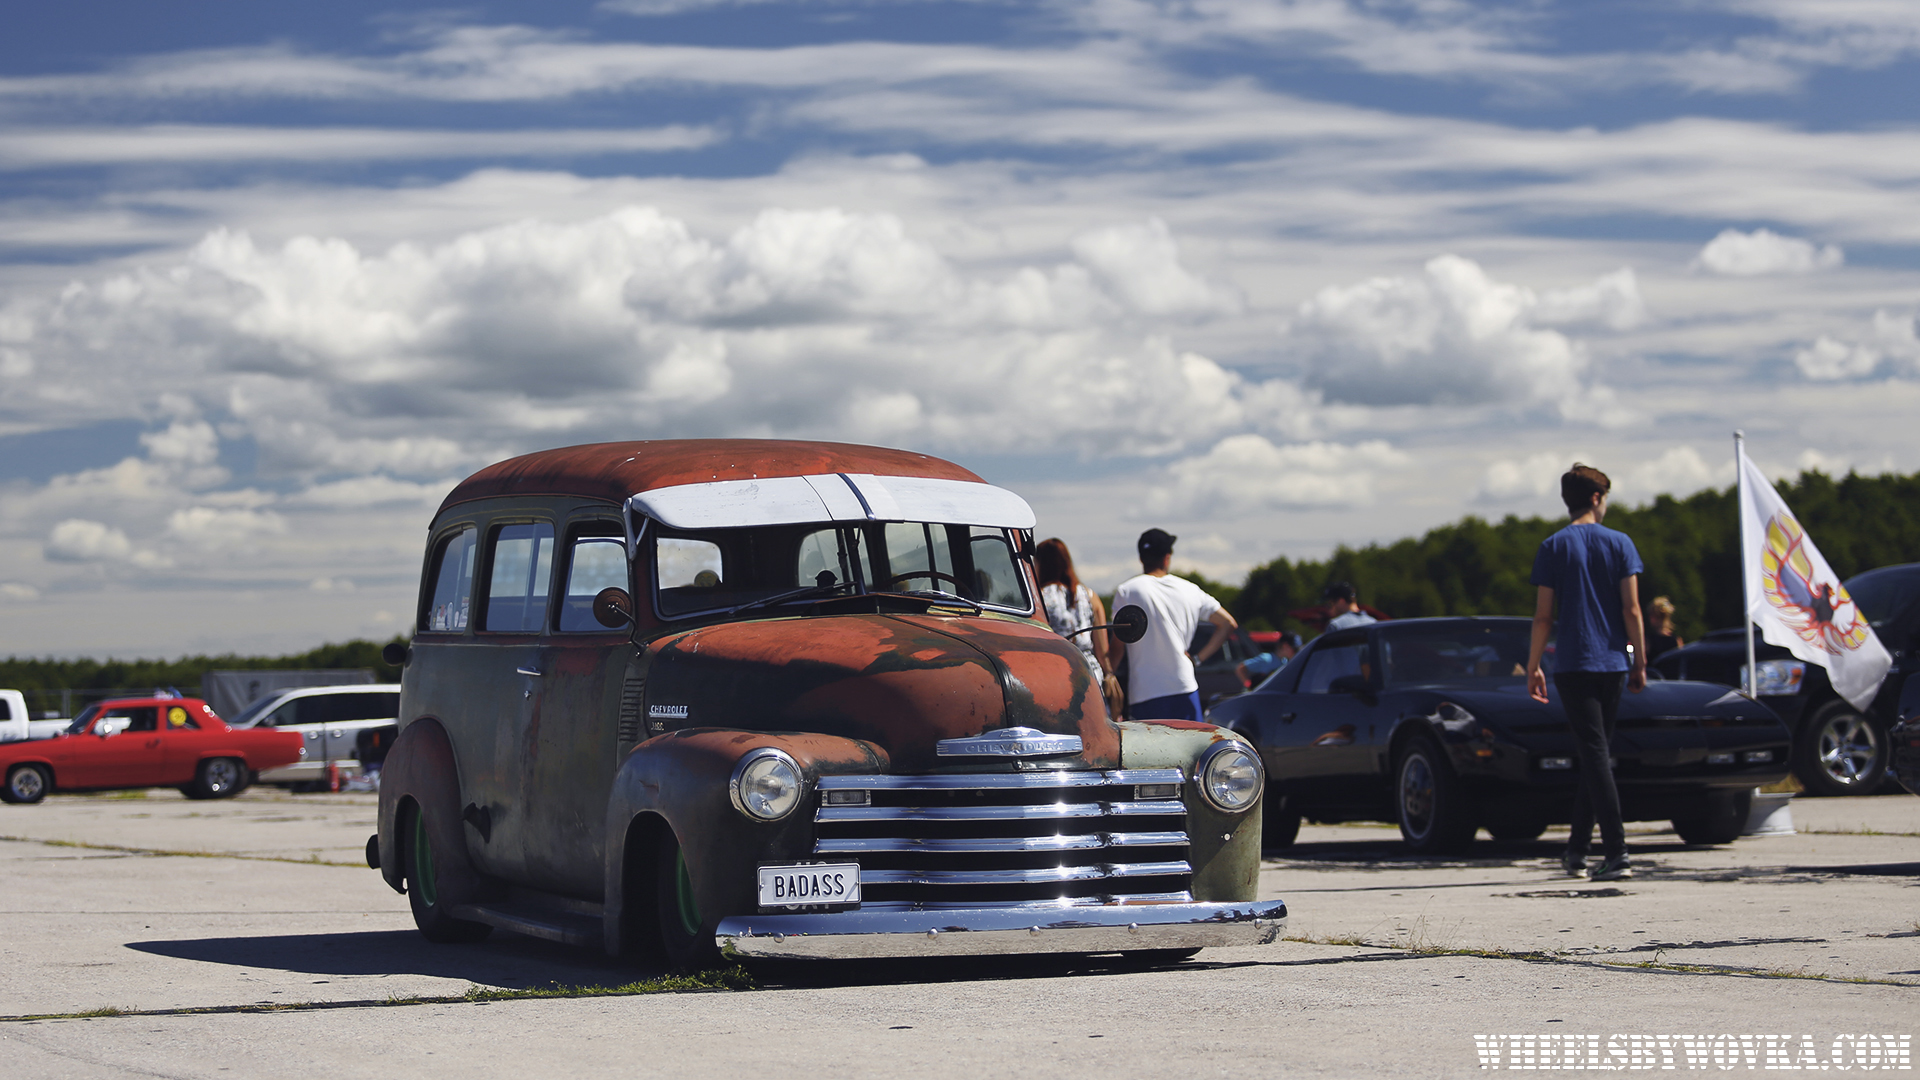 american-beauty-car-show-2017-haapsalu-dragrace-by-wheelsbywovka-17